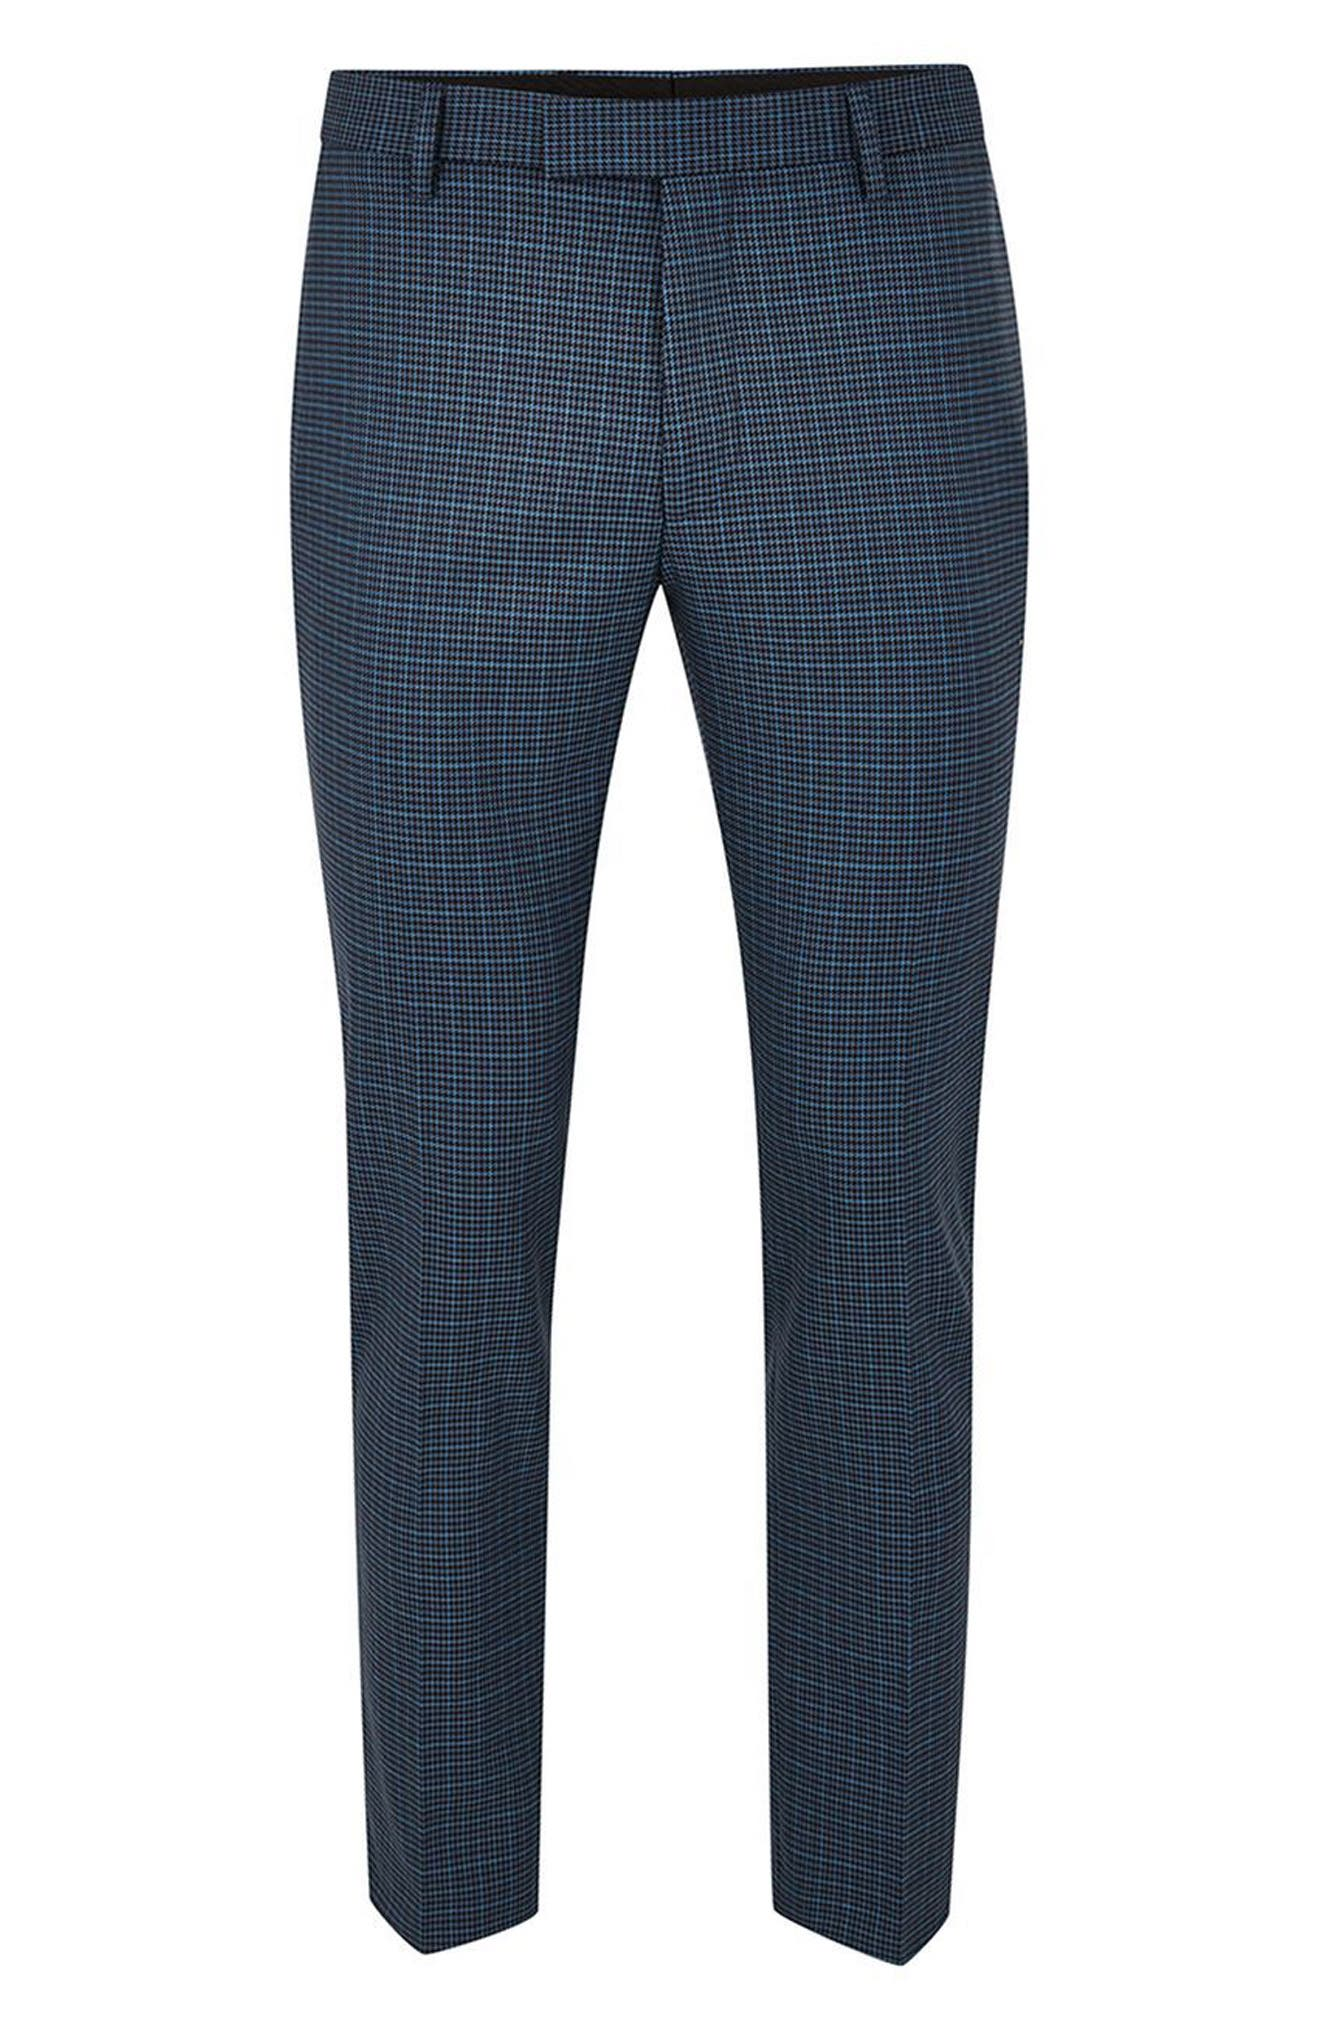 Check Skinny Fit Suit Trousers,                             Alternate thumbnail 4, color,                             Mid Blue Multi